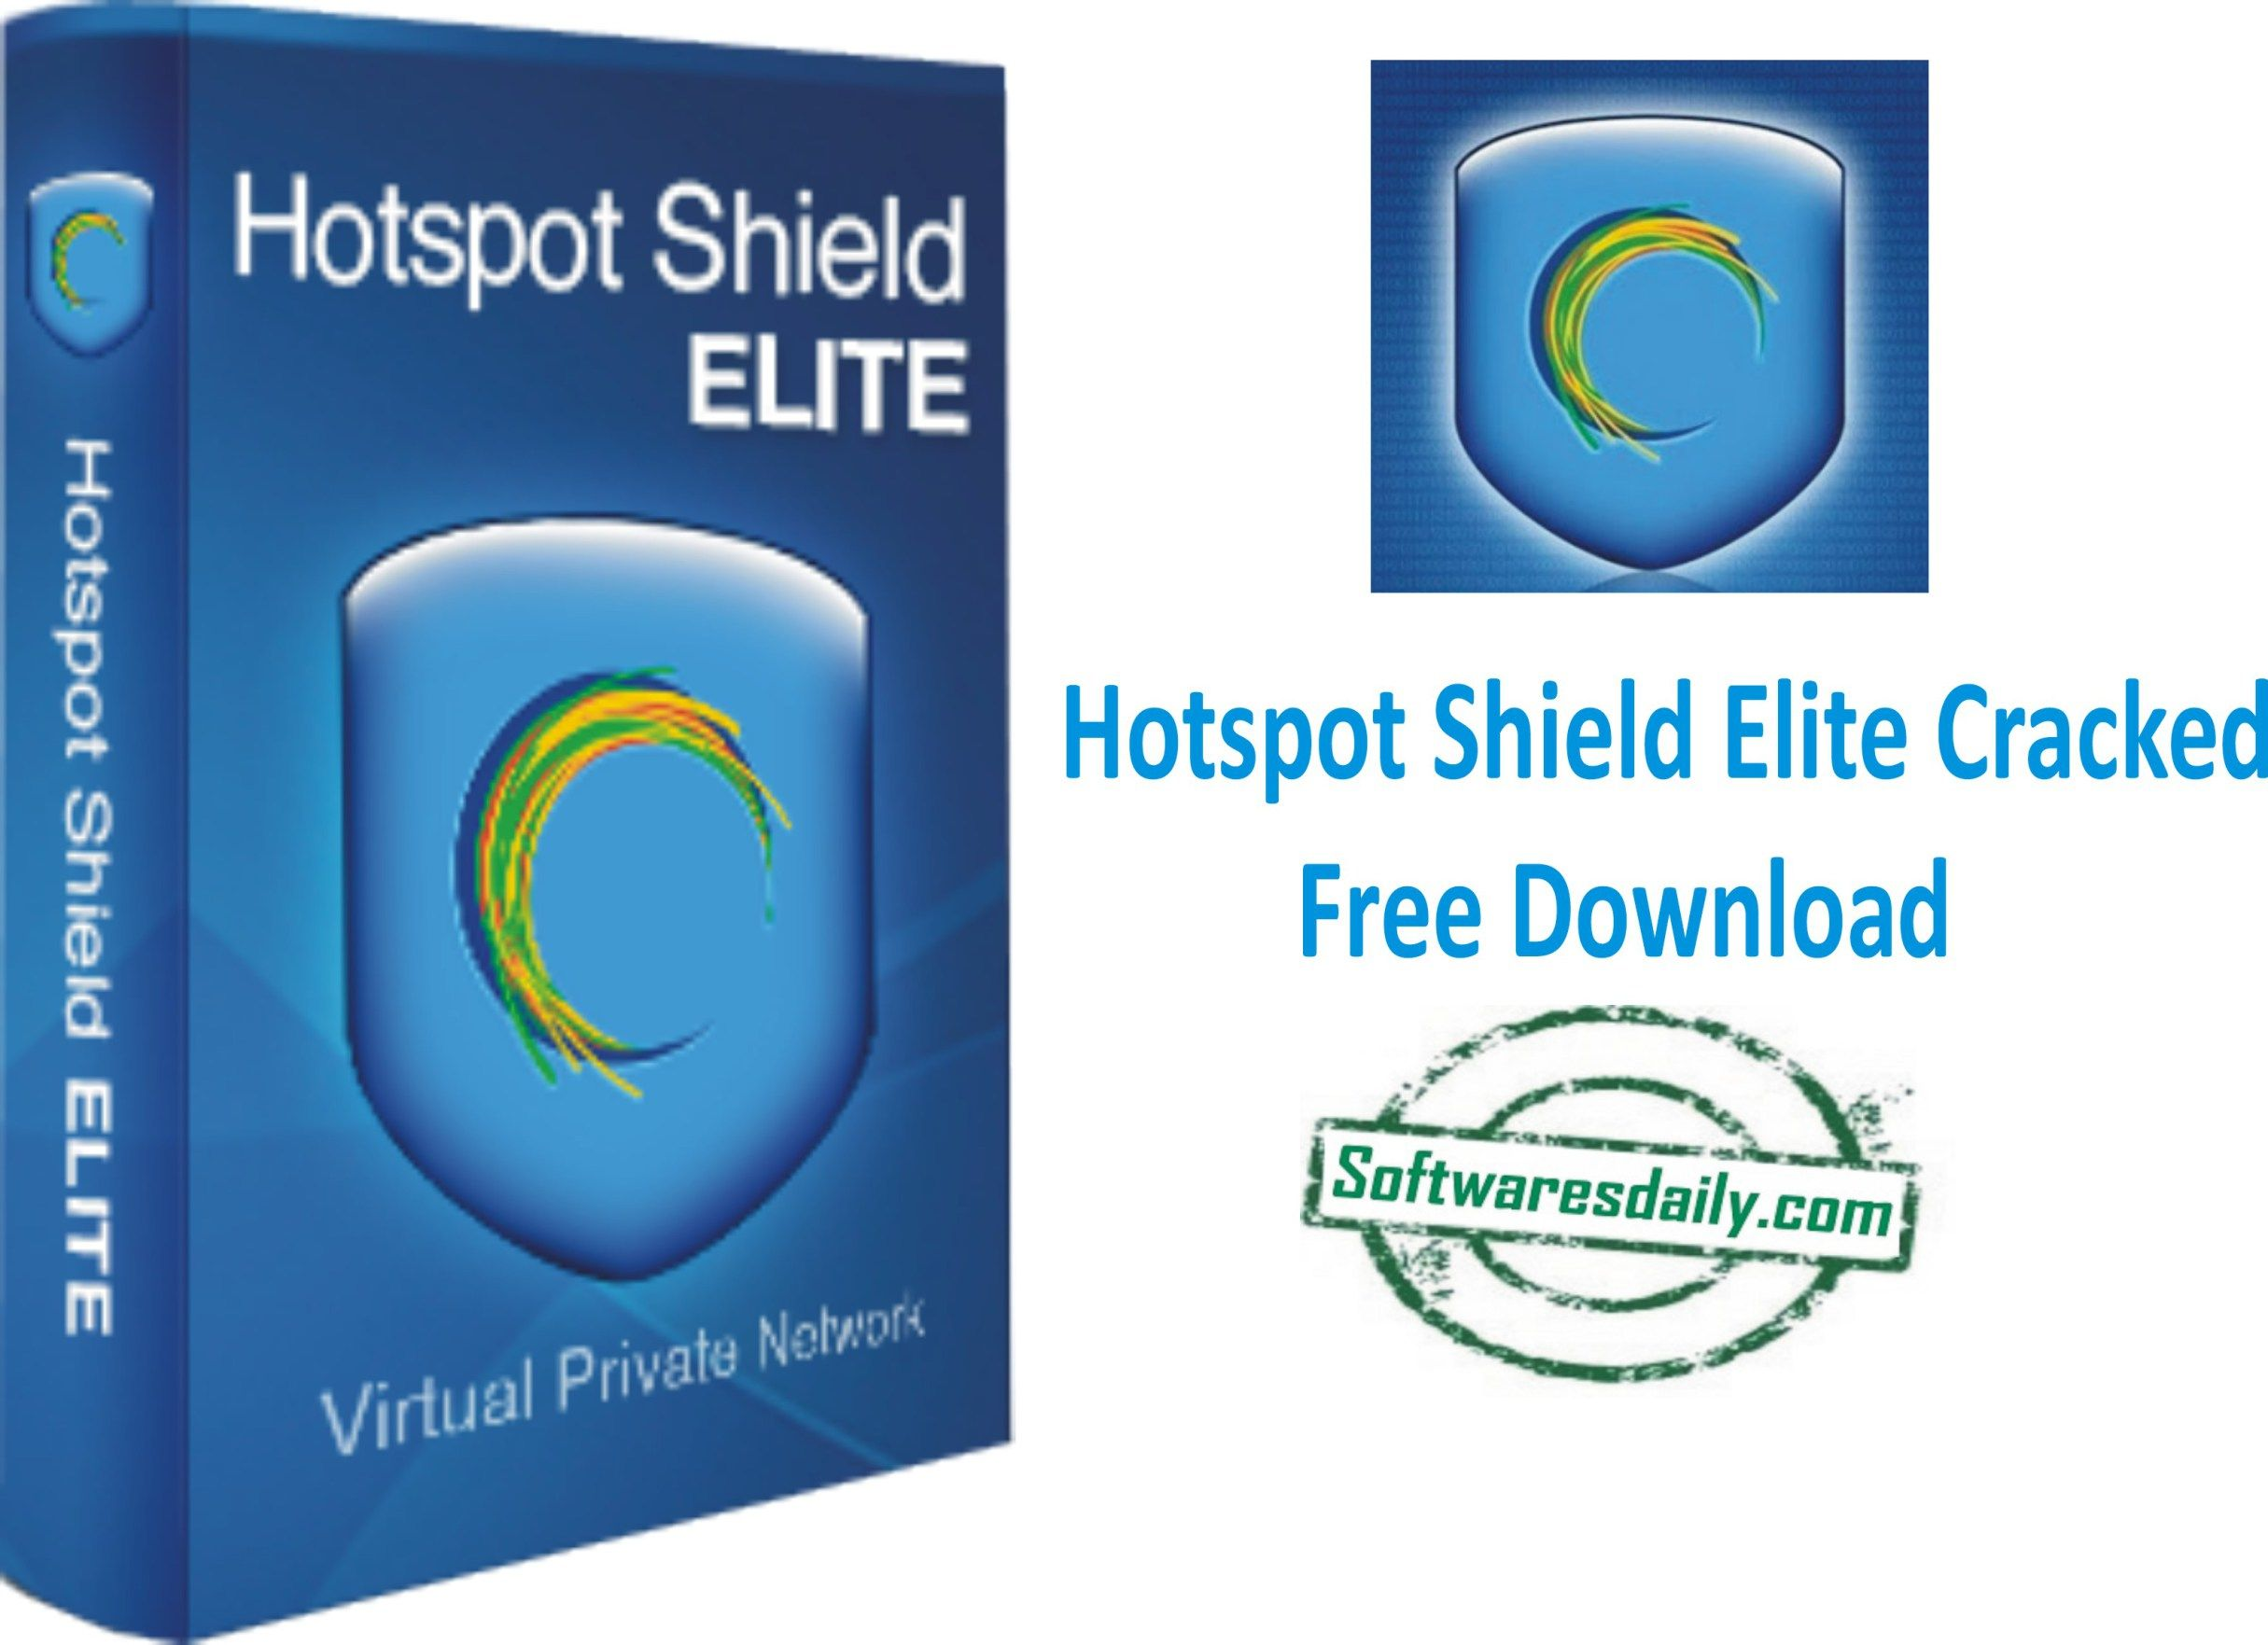 how to hack hotspot shield elite free